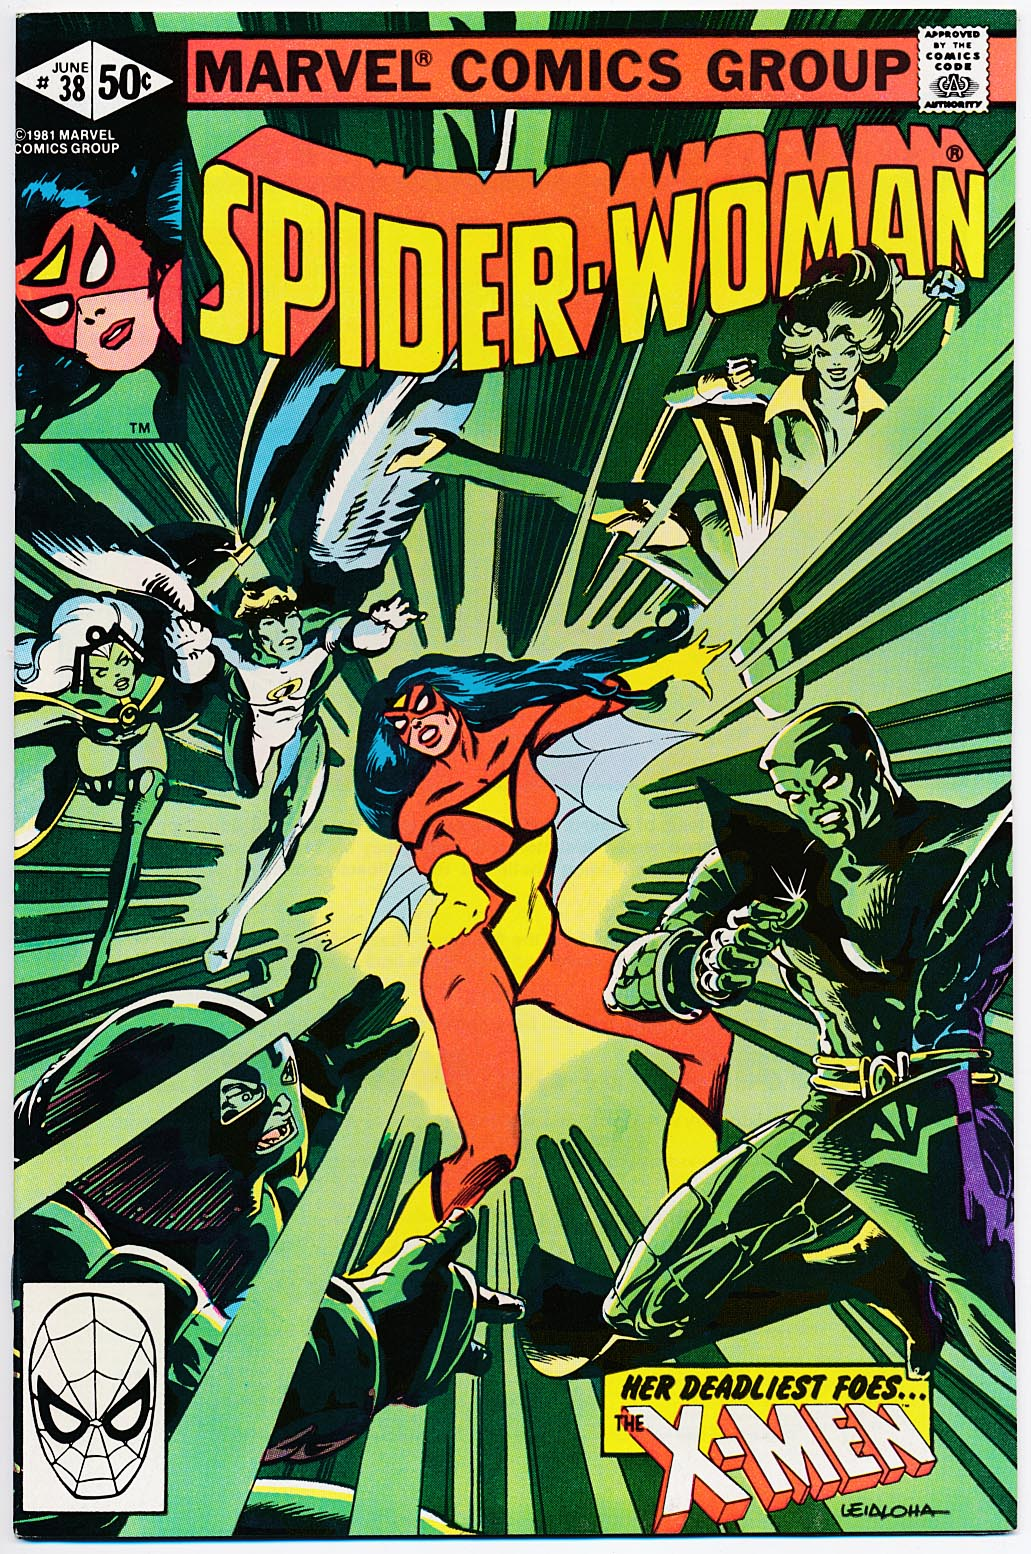 Spider-Woman vol 1 - 38 -VFNM